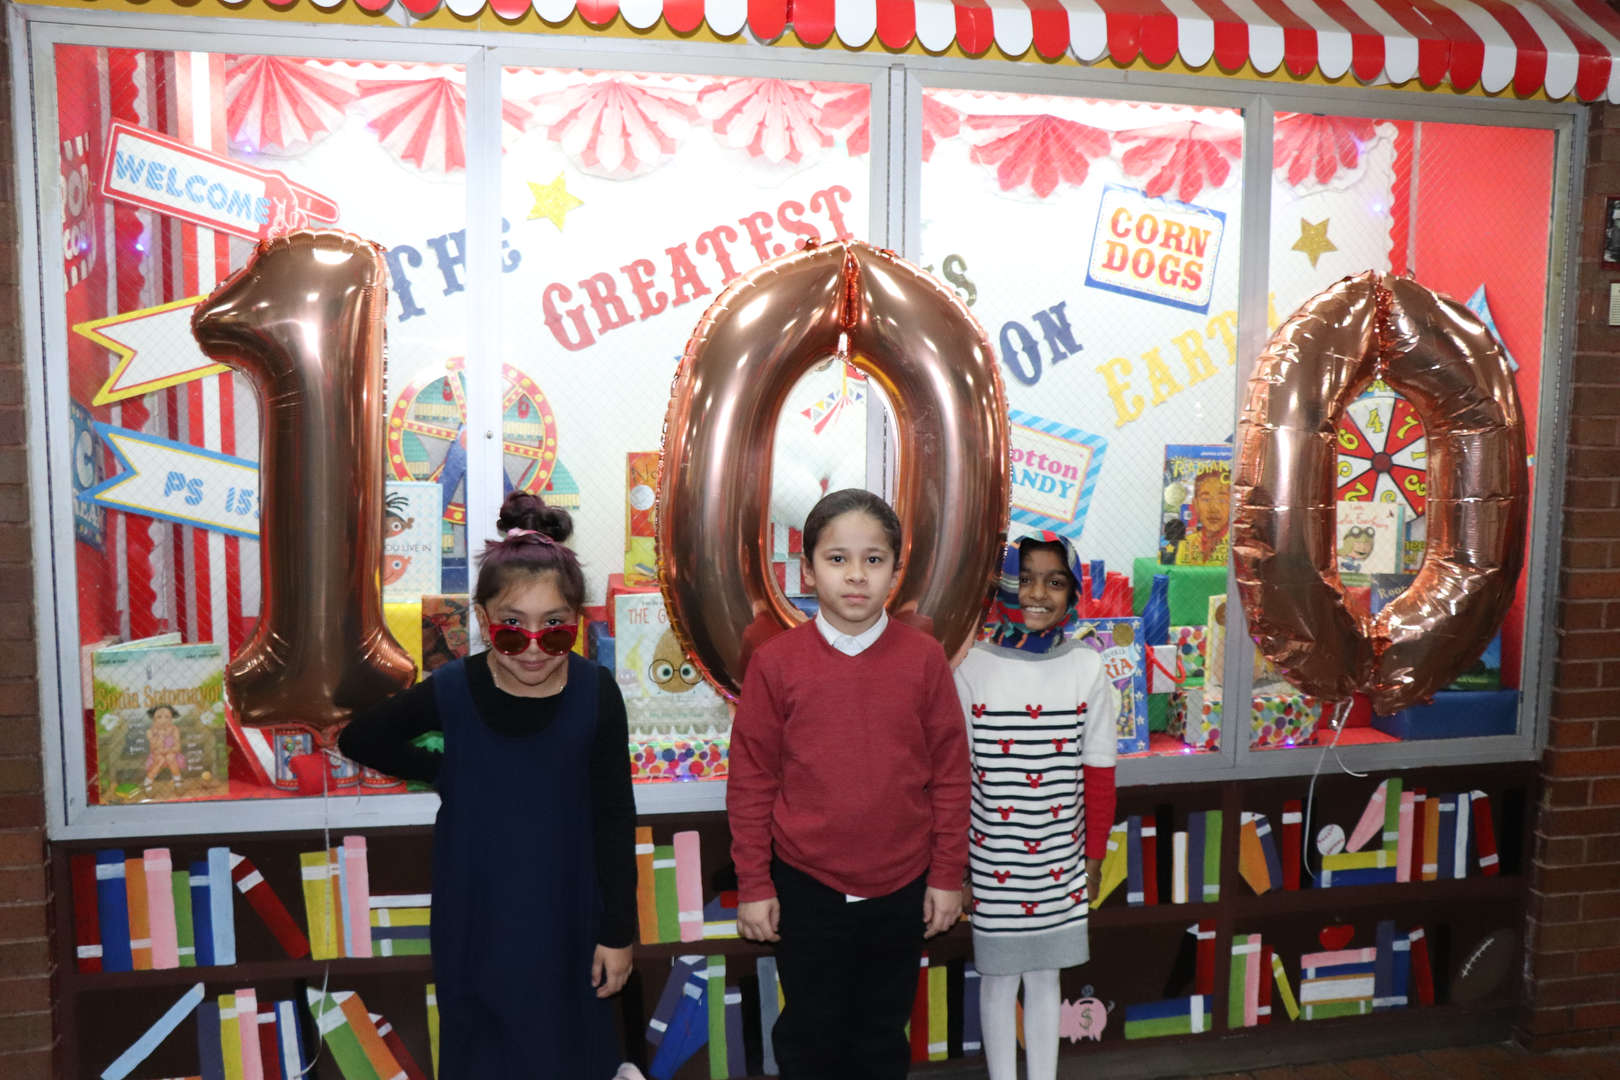 Some more students dressed like they are 100 in front of the number 100 balloons.